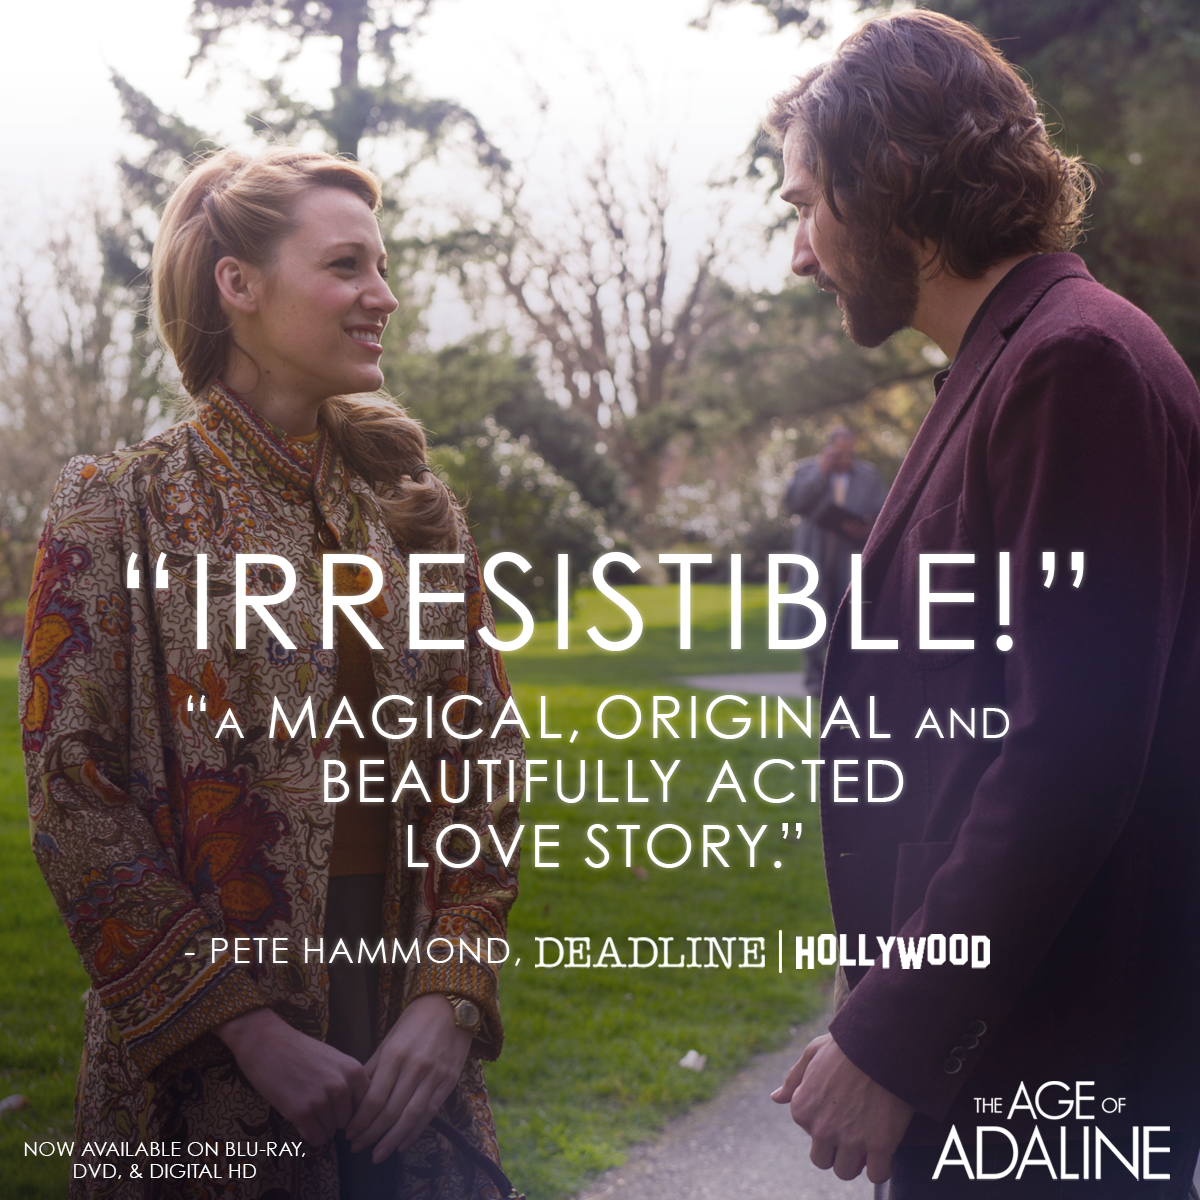 Romantic Movie Quotes: See The Romantic Movie That Critics At Deadline Hollywood